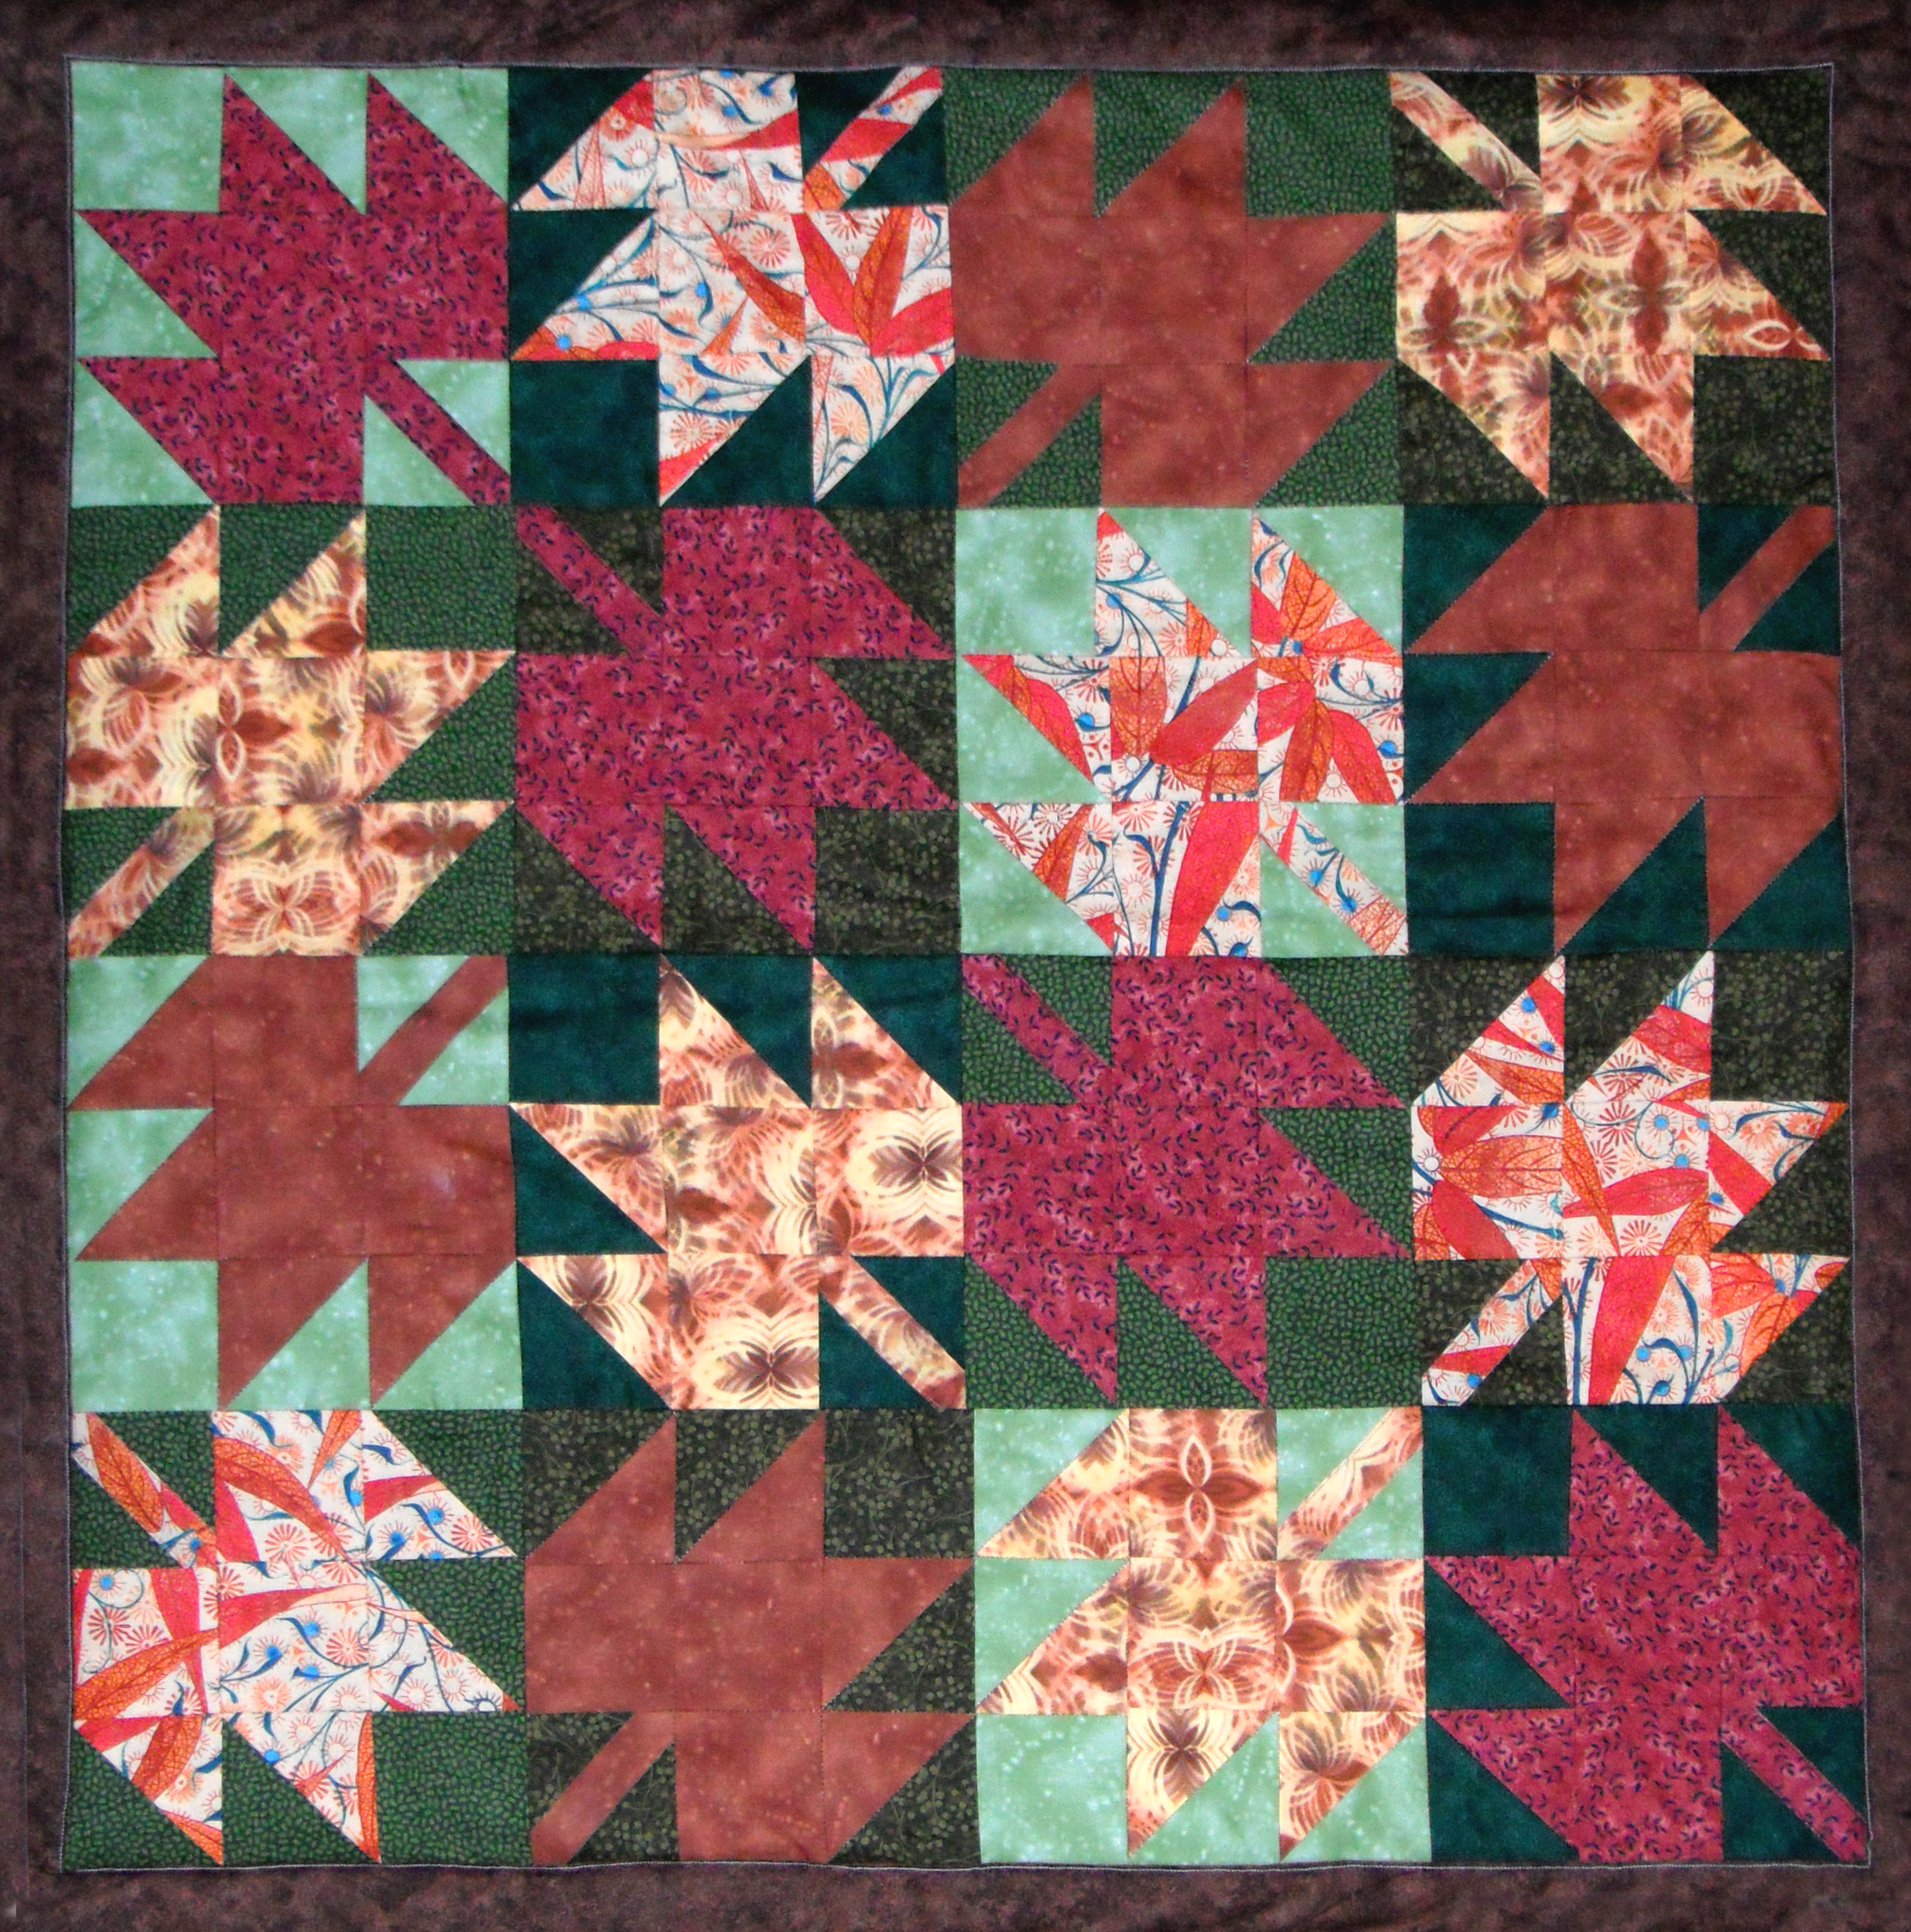 Lap quilt made using 16 maple leaf blocks